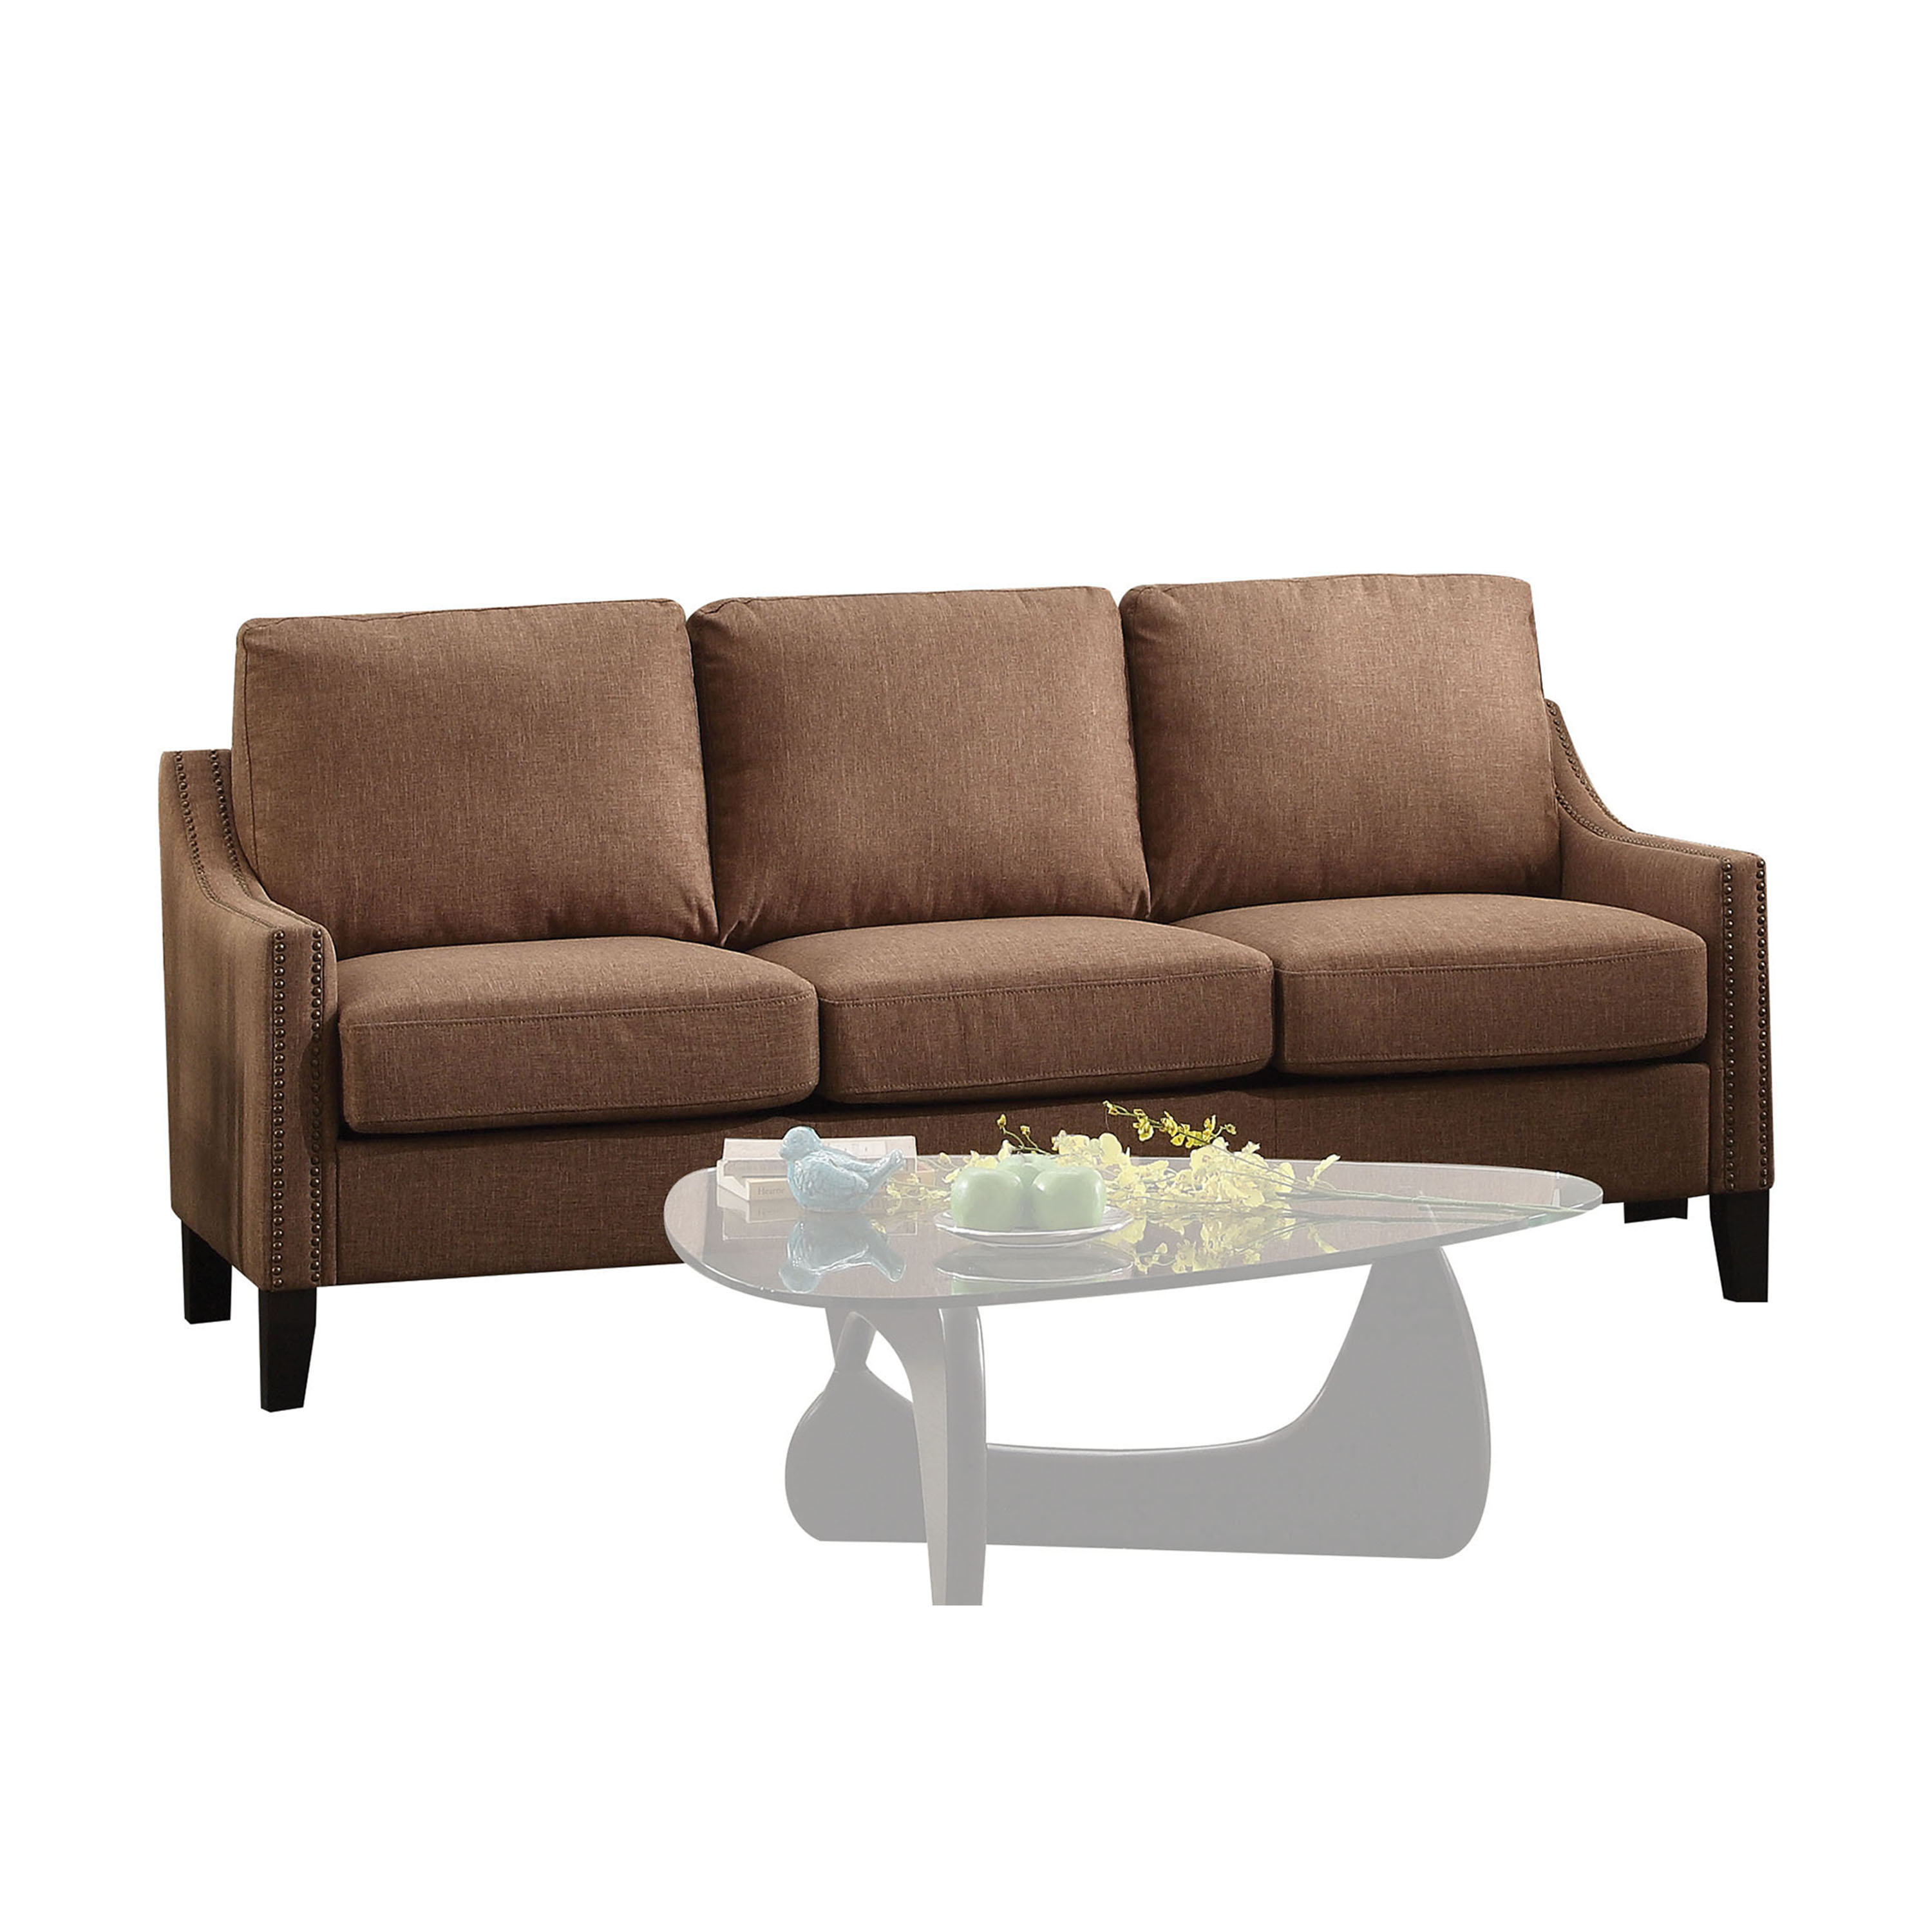 ACME Zapata Jr Nailhead Sofa in Brown Linen Upholstery by Acme Furniture